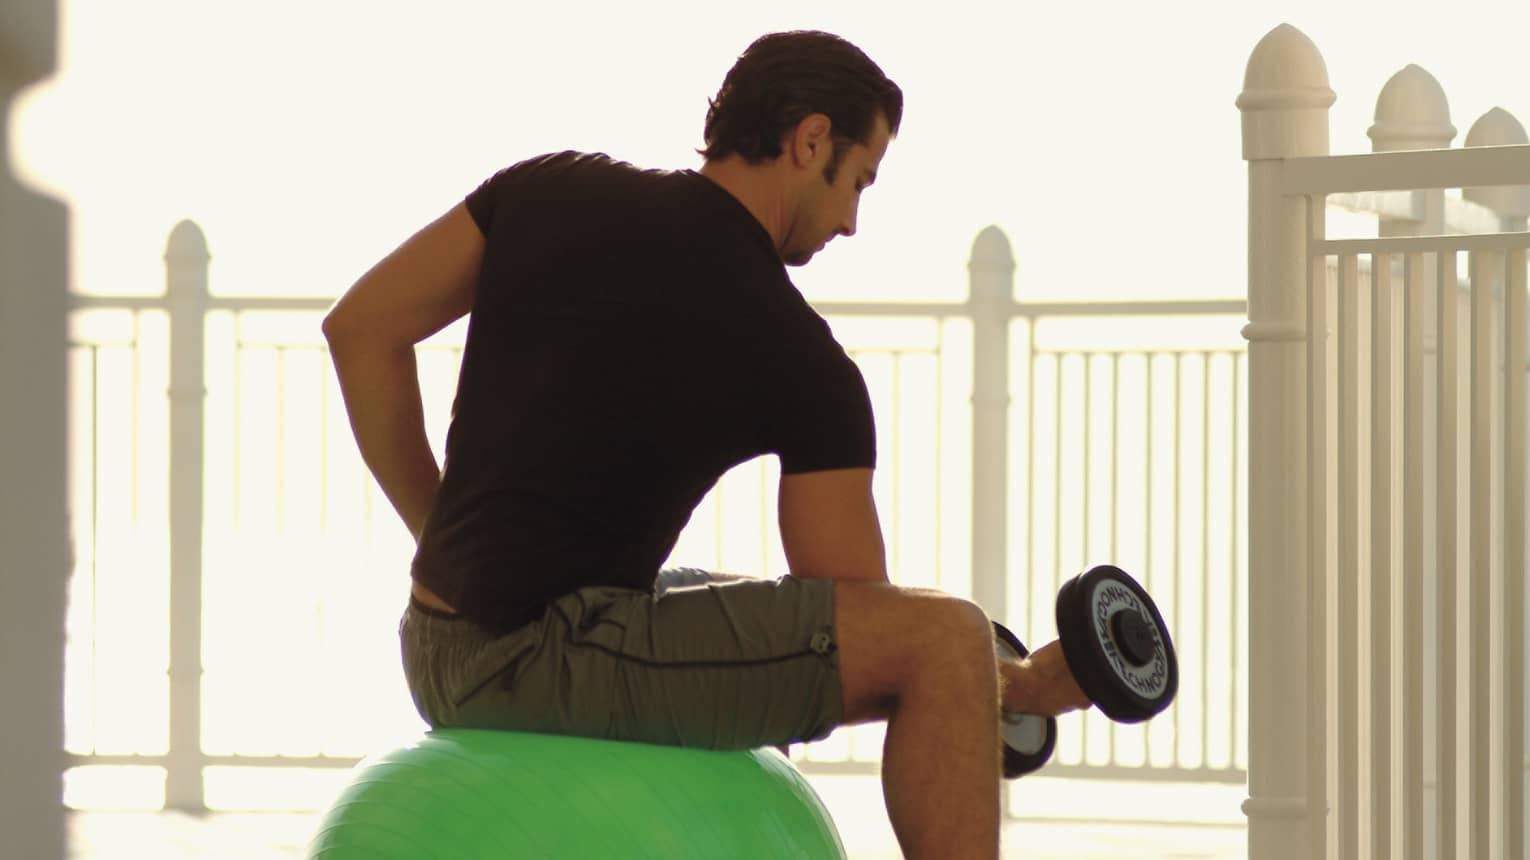 Back view of man in workout gear with hand weight, seated on exercise ball